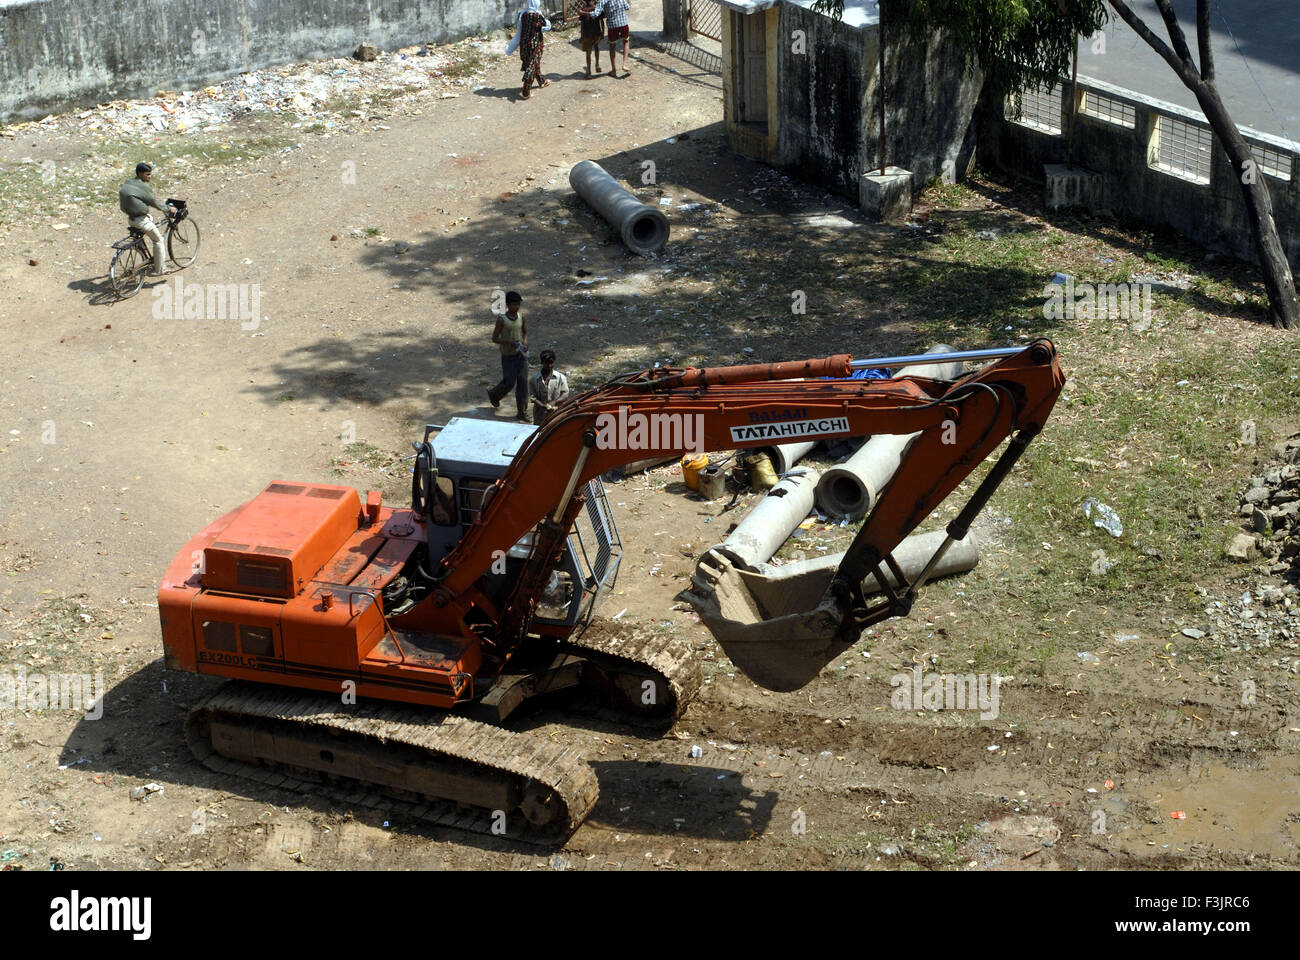 Hitachi Stock Photos & Hitachi Stock Images - Alamy